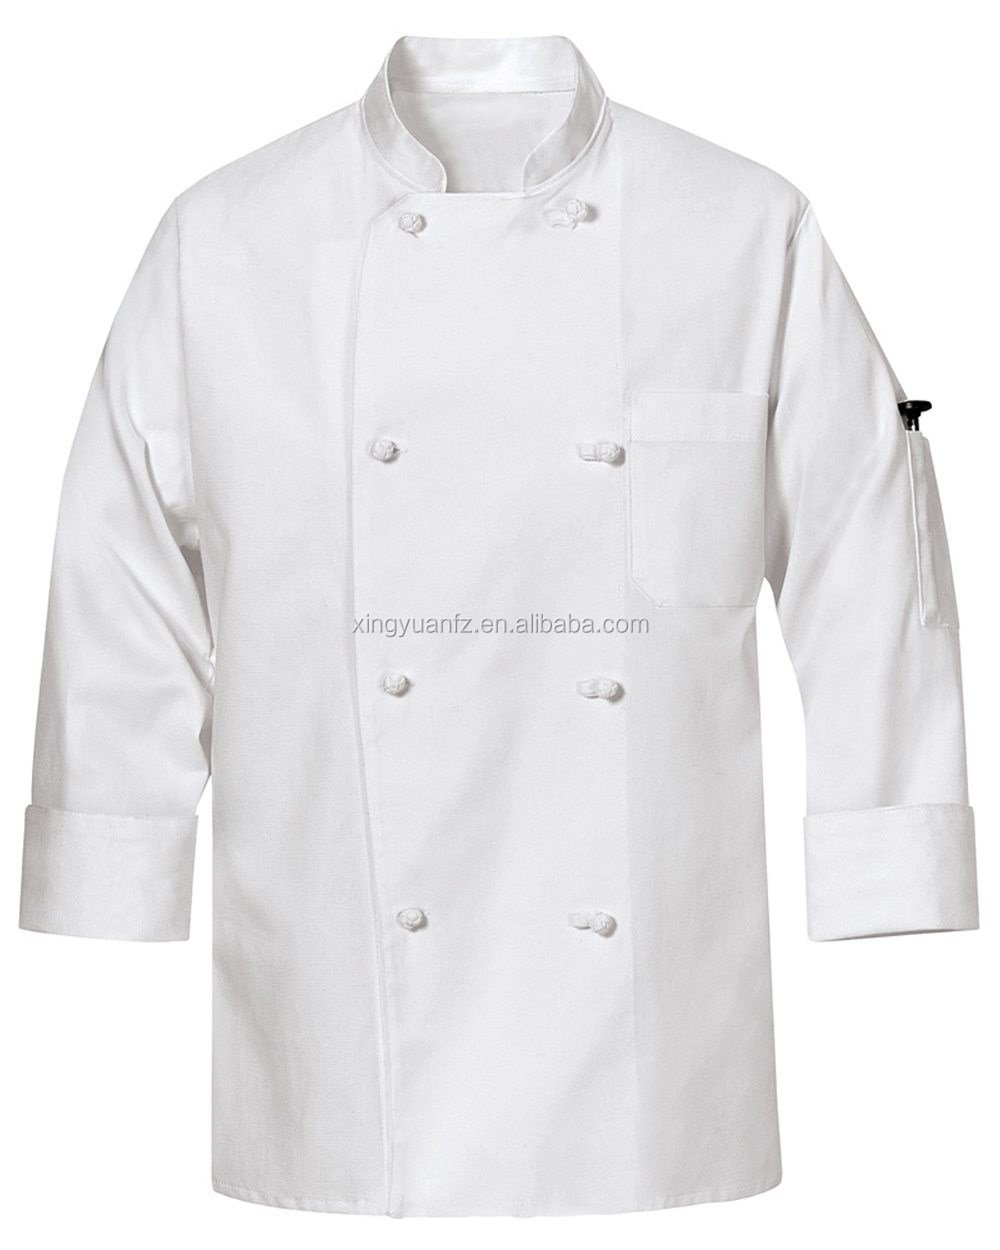 Sizing Chart With Common Left Chest Heart And Pocket: 100%cotton Twill White Short Sleeves Chef Coat/shirt